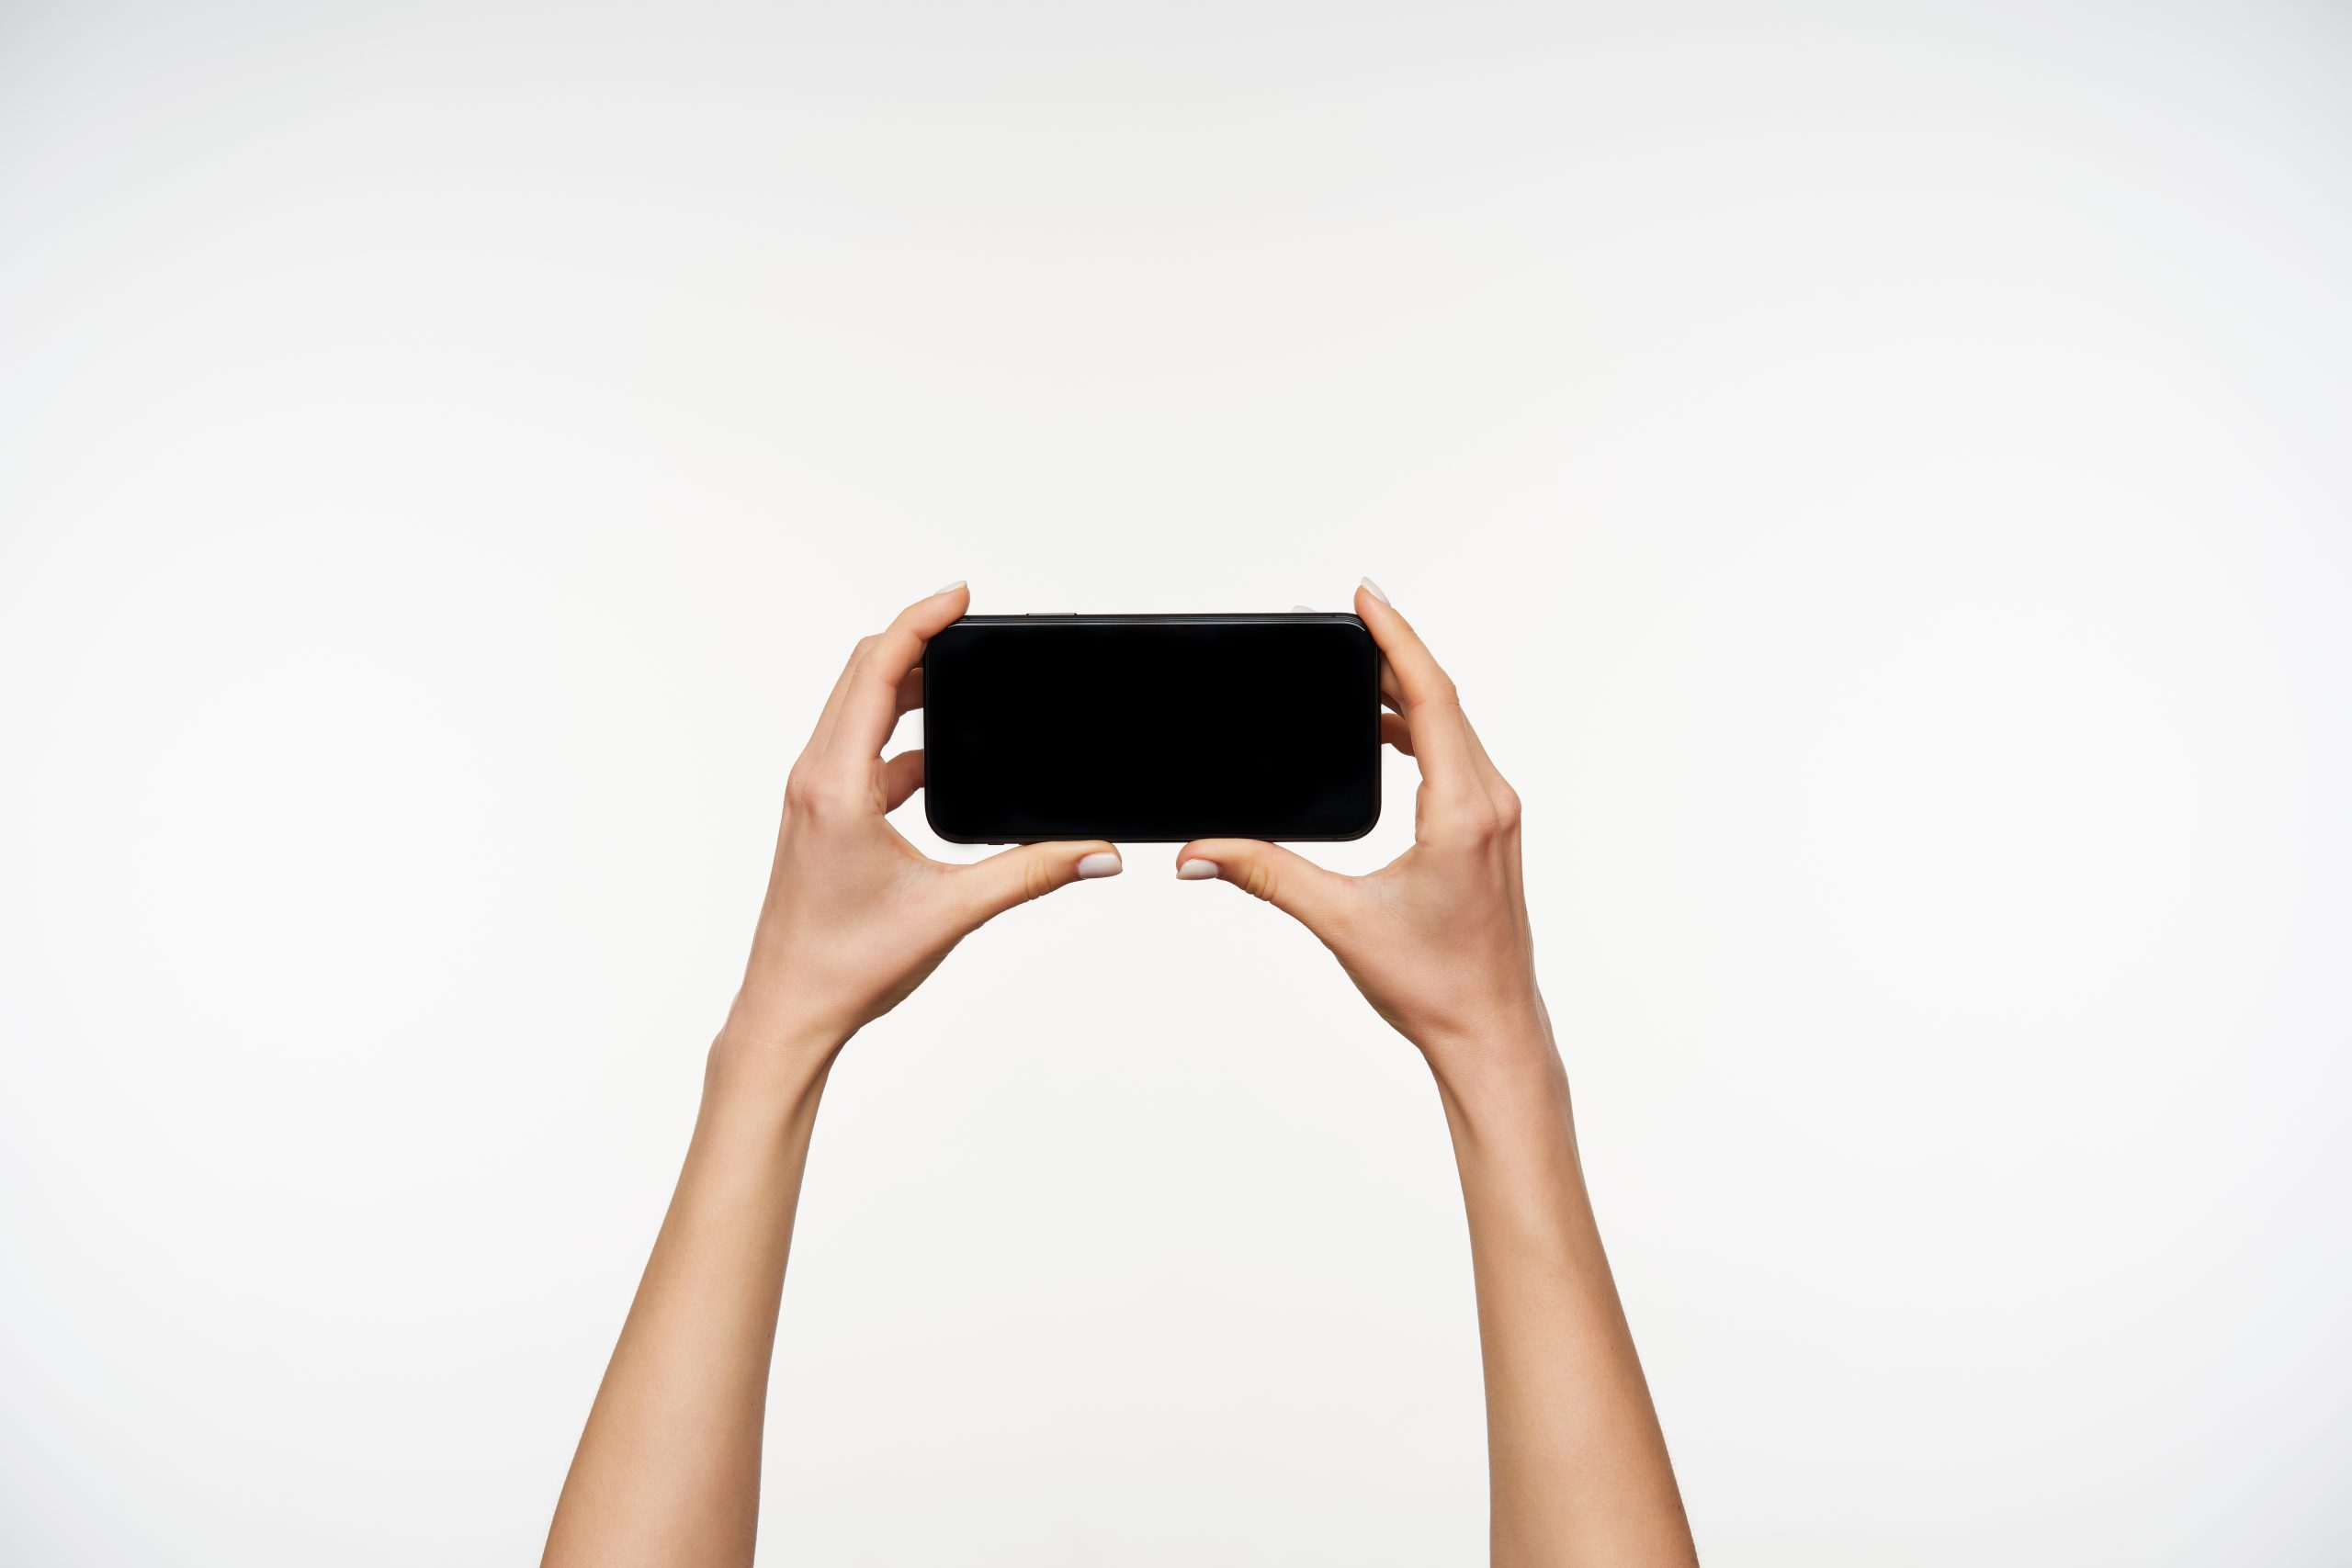 Cropped photo of raised fair-skinned woman's arms keeping mobile phone horizontally while going to watch video on it, standing over white background